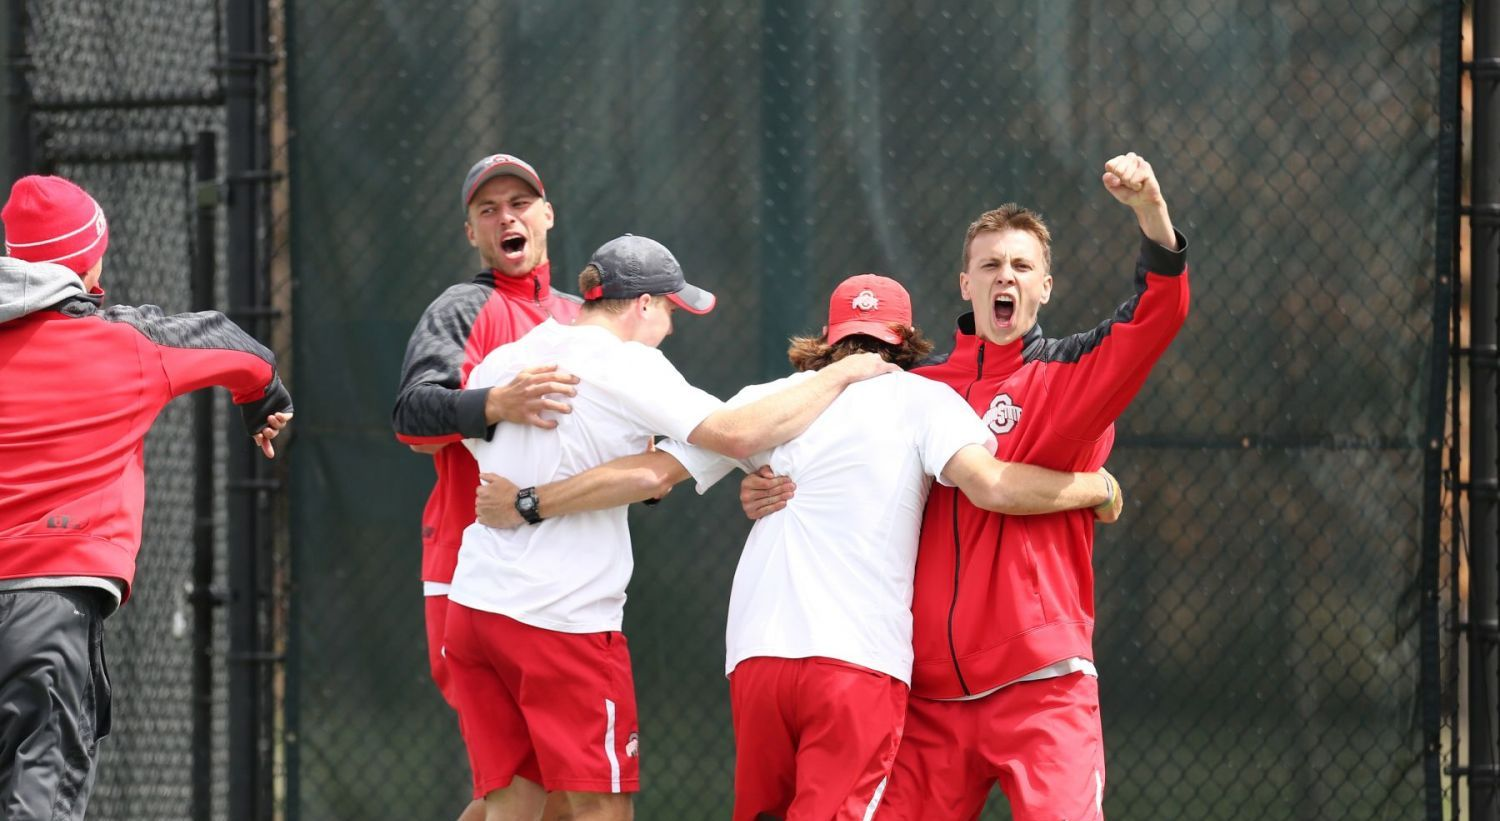 April 27, 2014. East Lansing, Mi; Ohio State Wins Men's Tennis Tournament. Mandatory Credit: Rey Del Rio